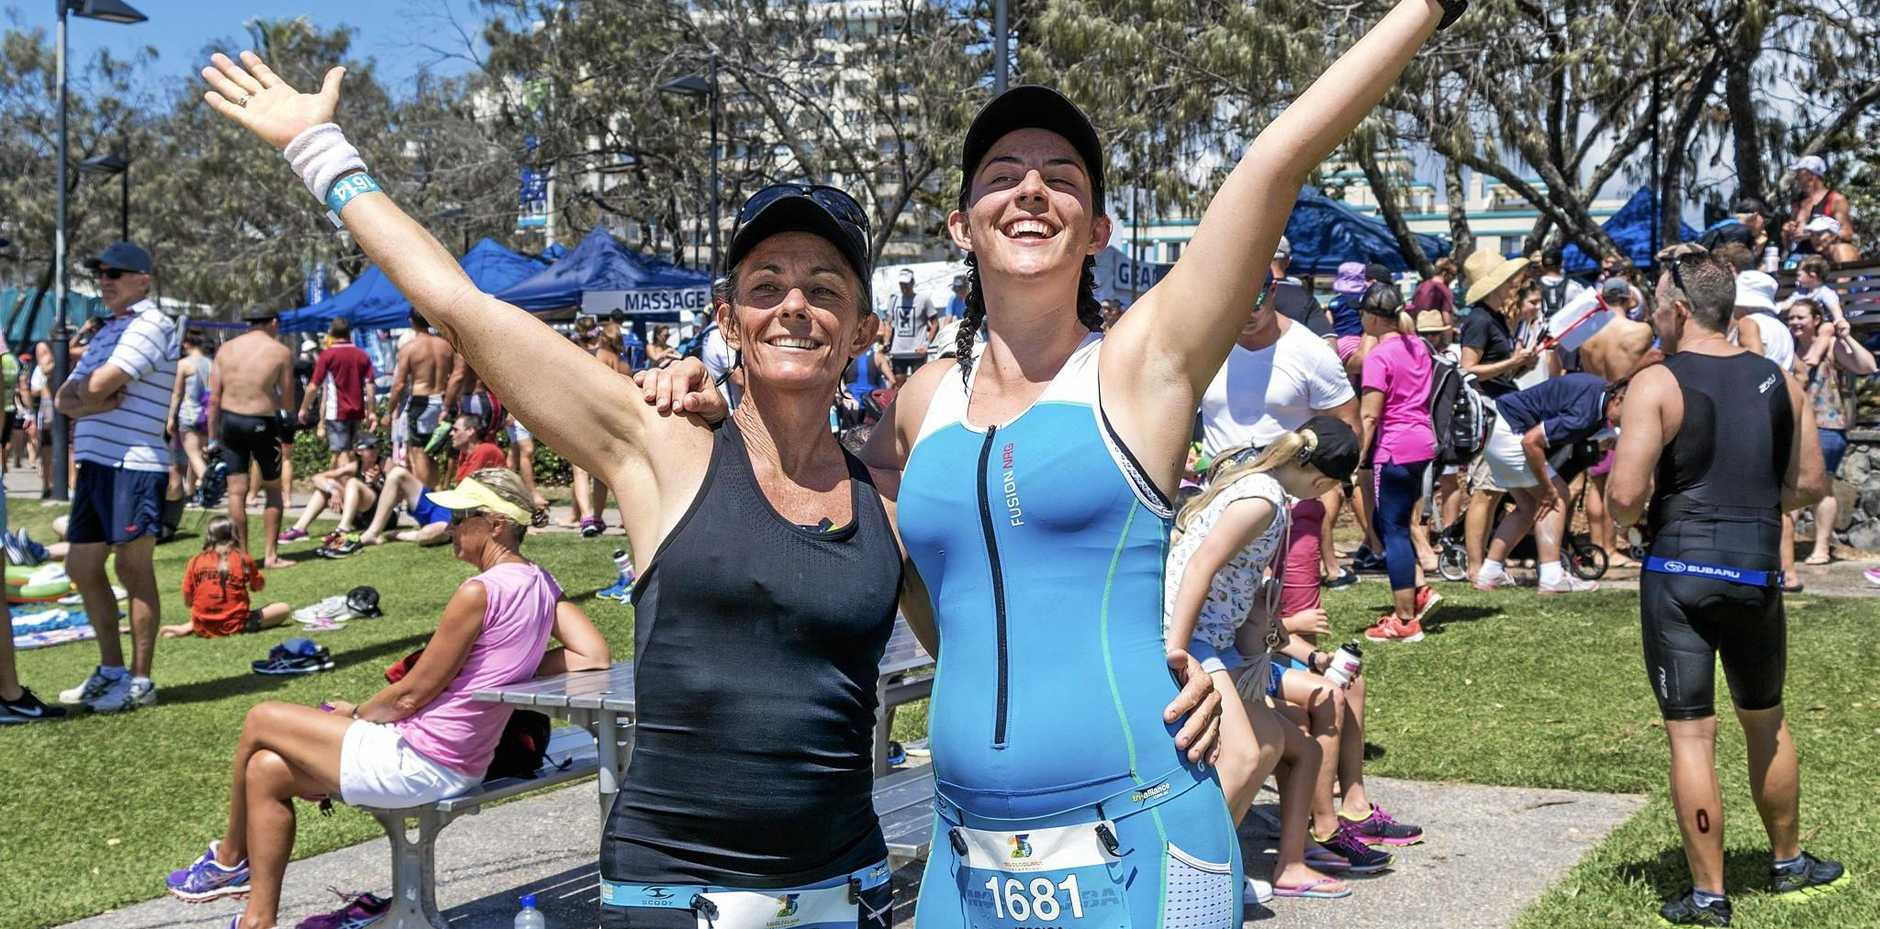 FAMILY RACE: Jenny (dark outfit) completed the Mooloolaba Triathlon alongside her pregnant daughter Jekka (blue outfit). Photo: Oliver Shearer